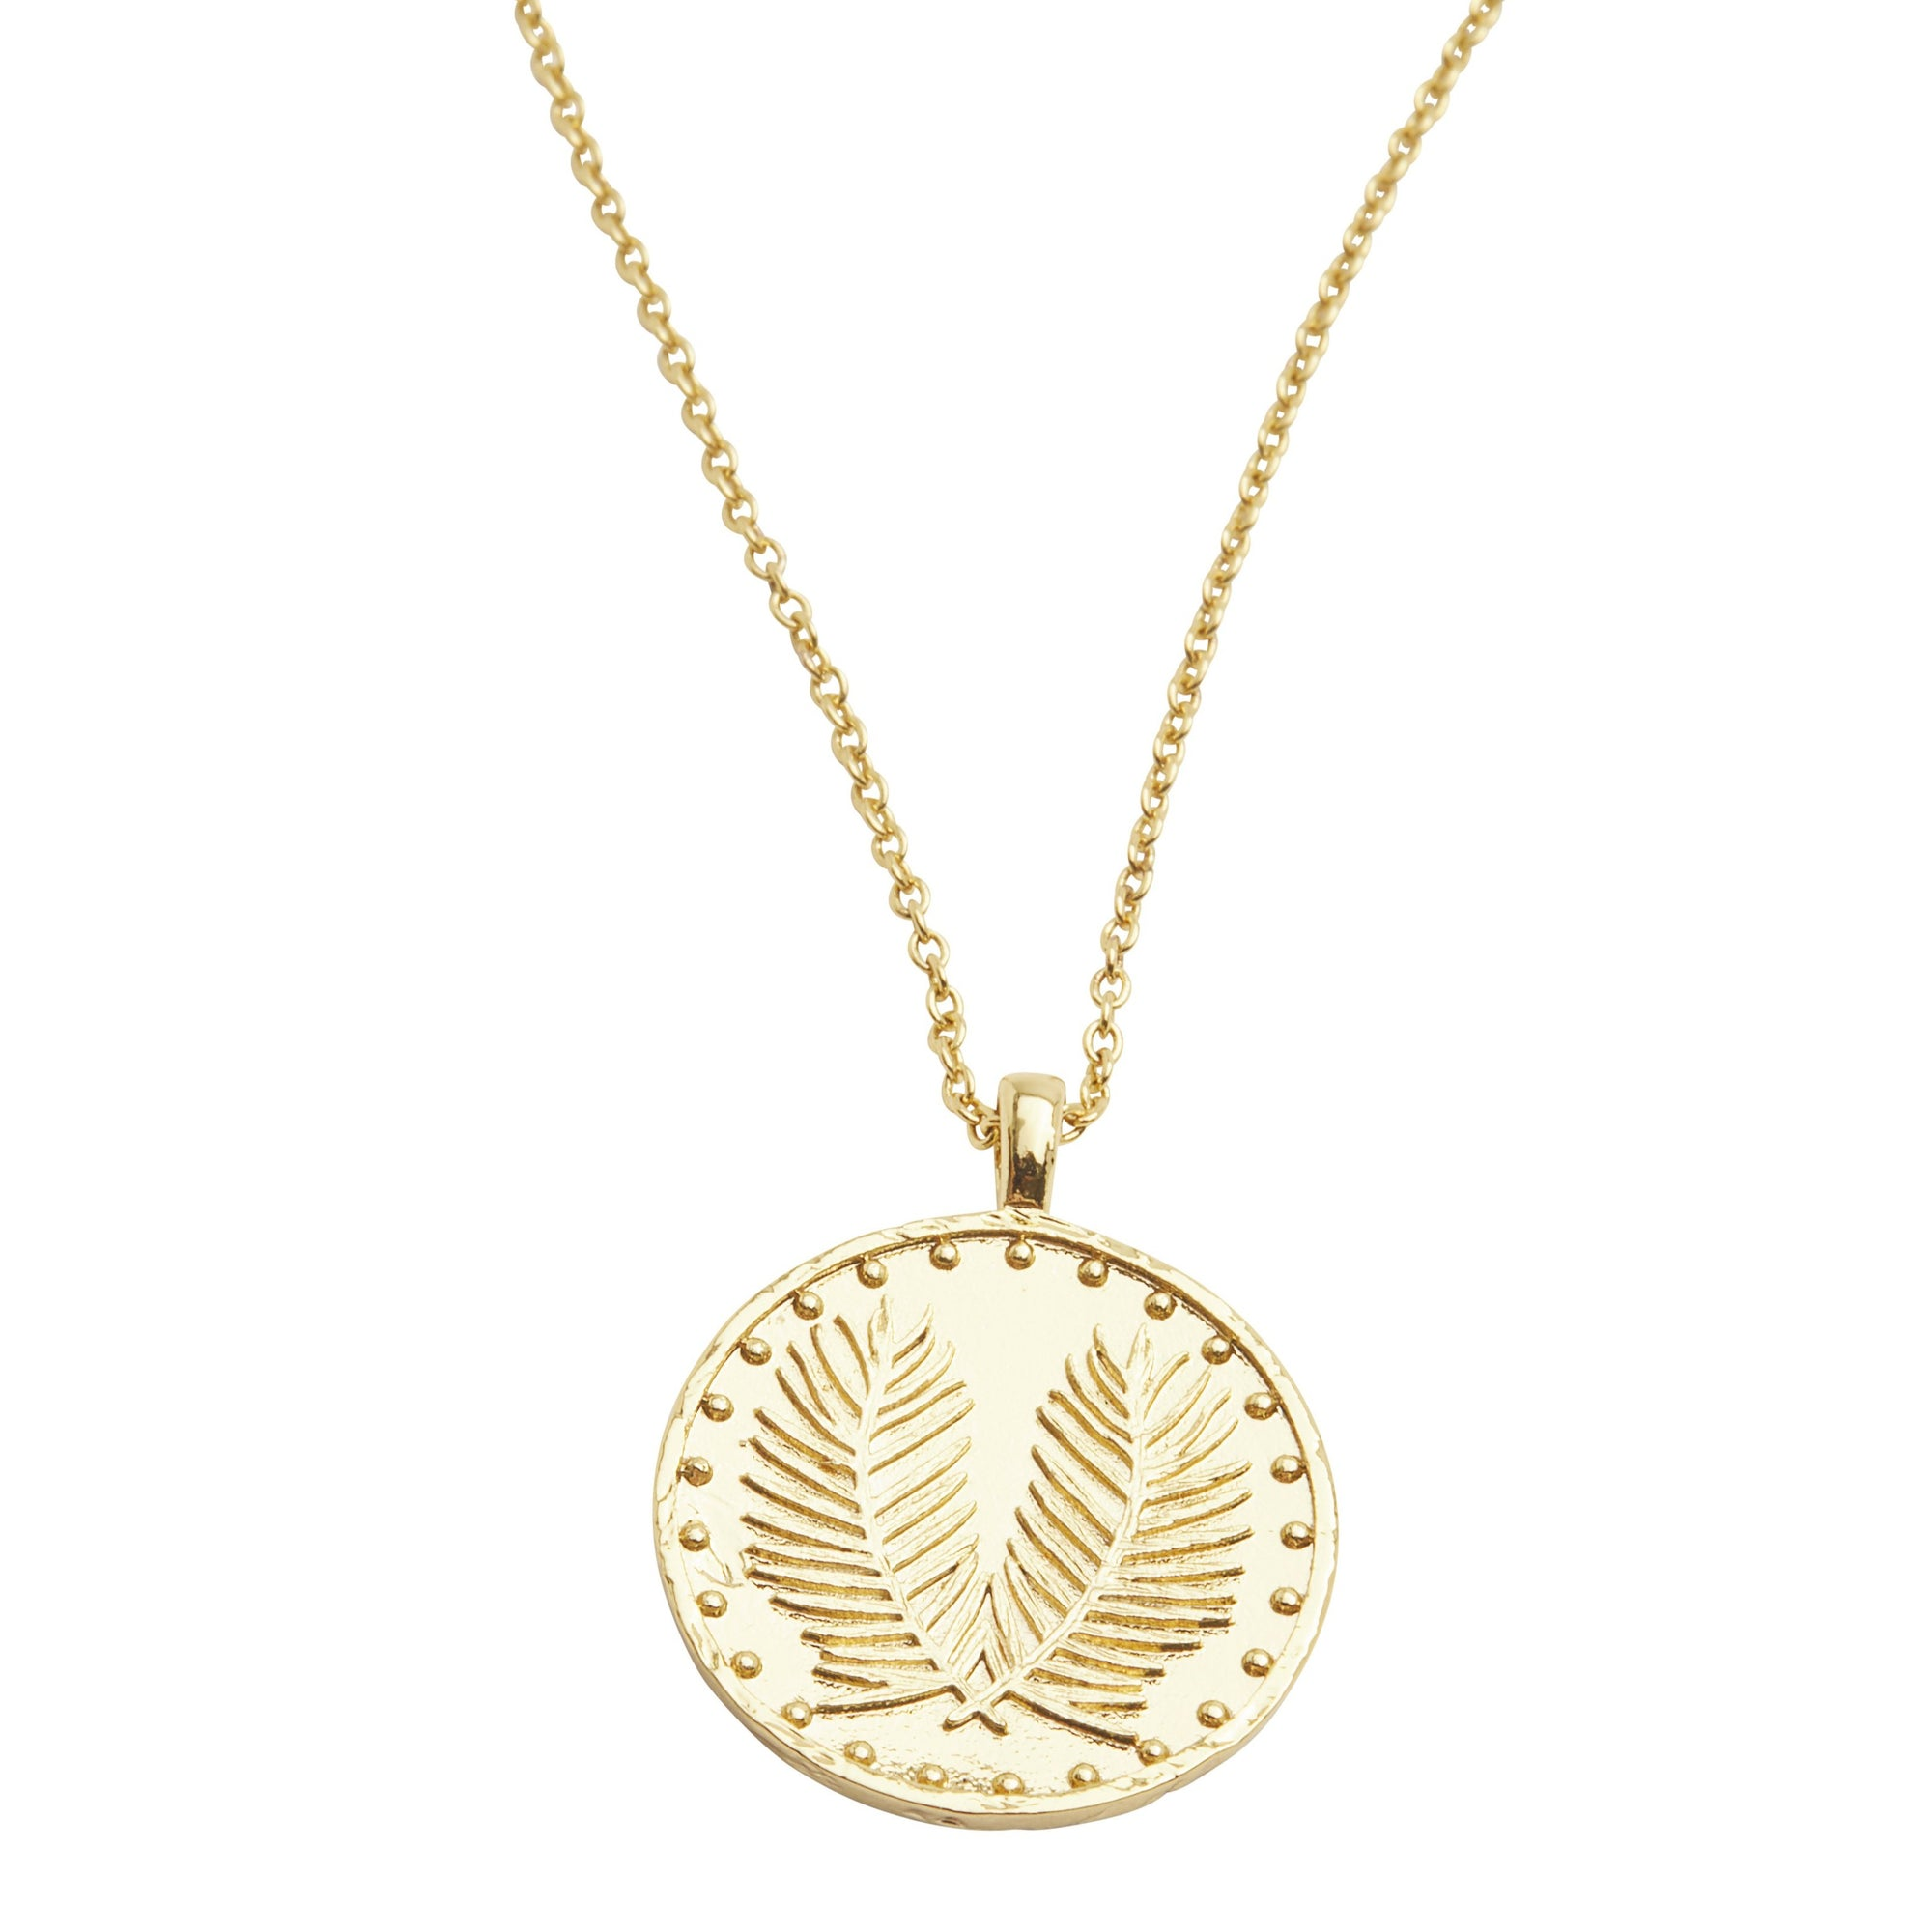 "Gorjana Palm Coin Necklace  This unique coin necklace has the feel of a family heirloom. This coin charm centers on an ever-so-dainty ball chain that effortlessly elevates your layered look. Adjustable. Chain extends out to 19"". Coin is 3/4"" across. Spring ring closure with silicone slide bead. Available in 18k gold plated brass."